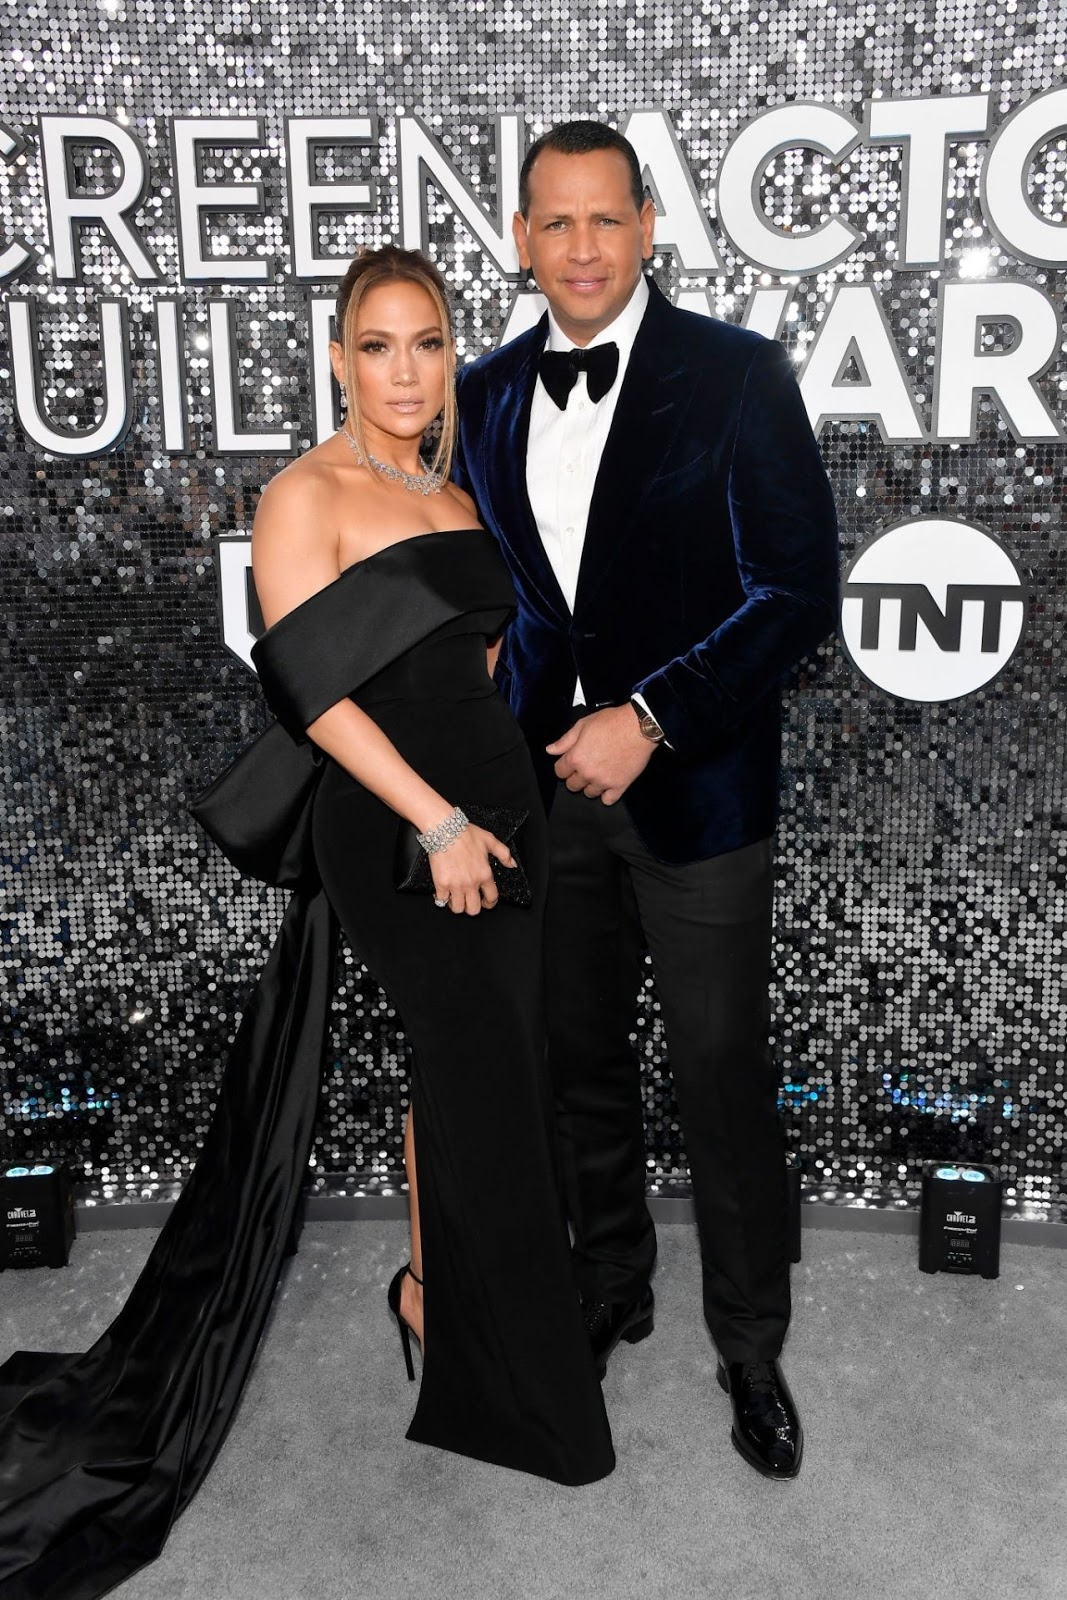 Jennifer Lopez dazzles in $9M worth of diamonds with Alex Rodriguez at SAG Awards in LA